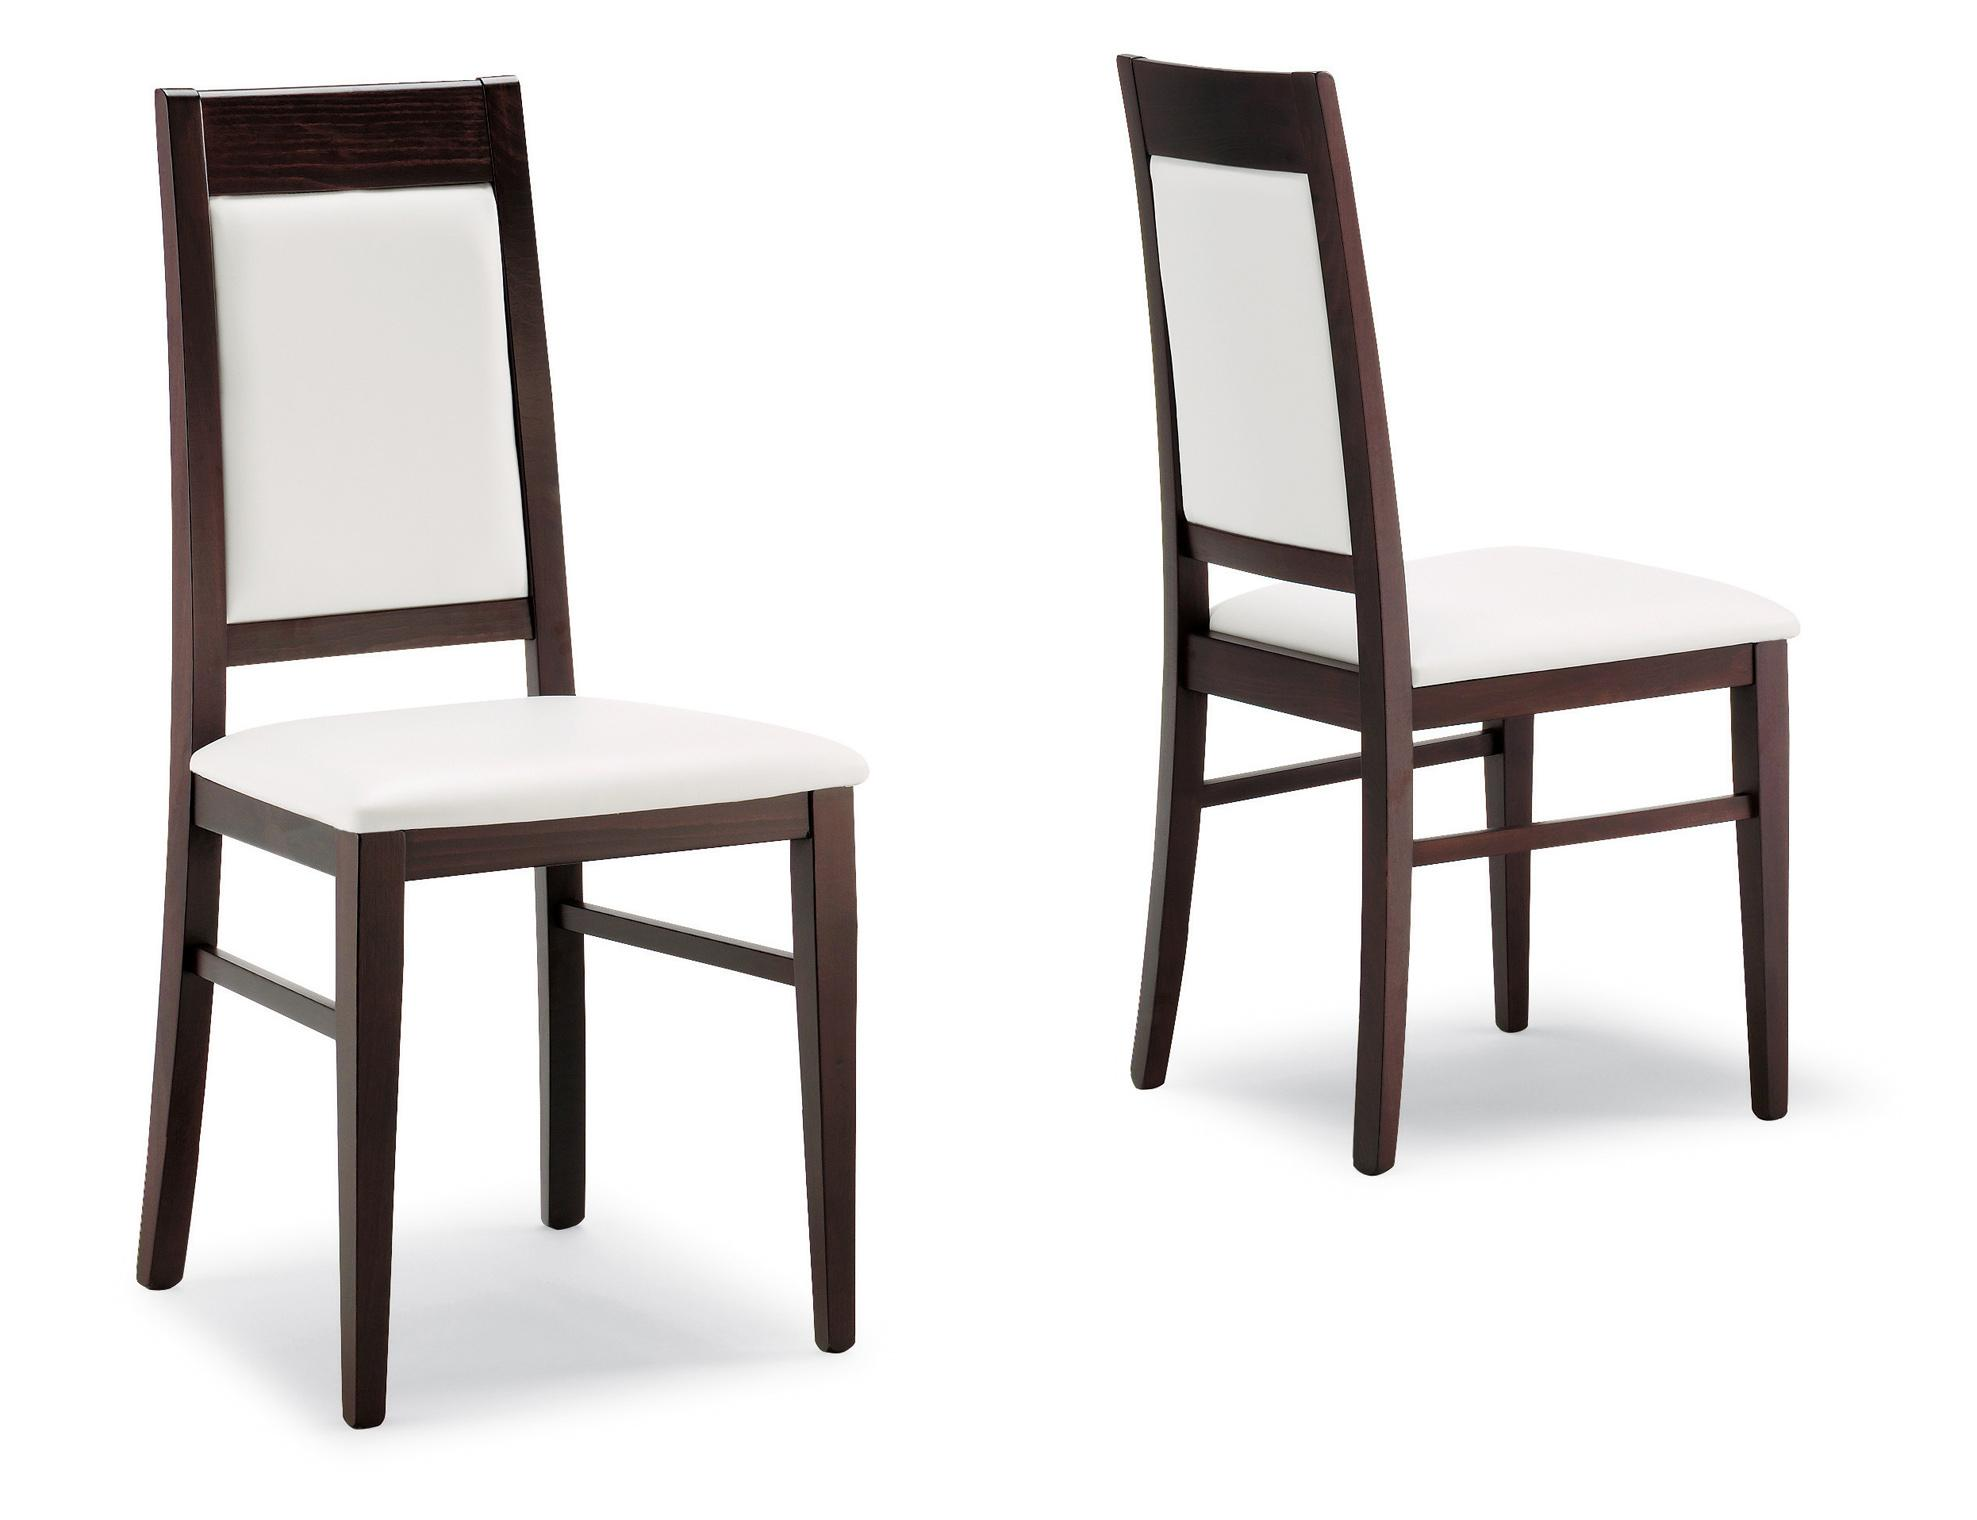 chaises de restaurant design 4 0 10000 0 pi ces. Black Bedroom Furniture Sets. Home Design Ideas